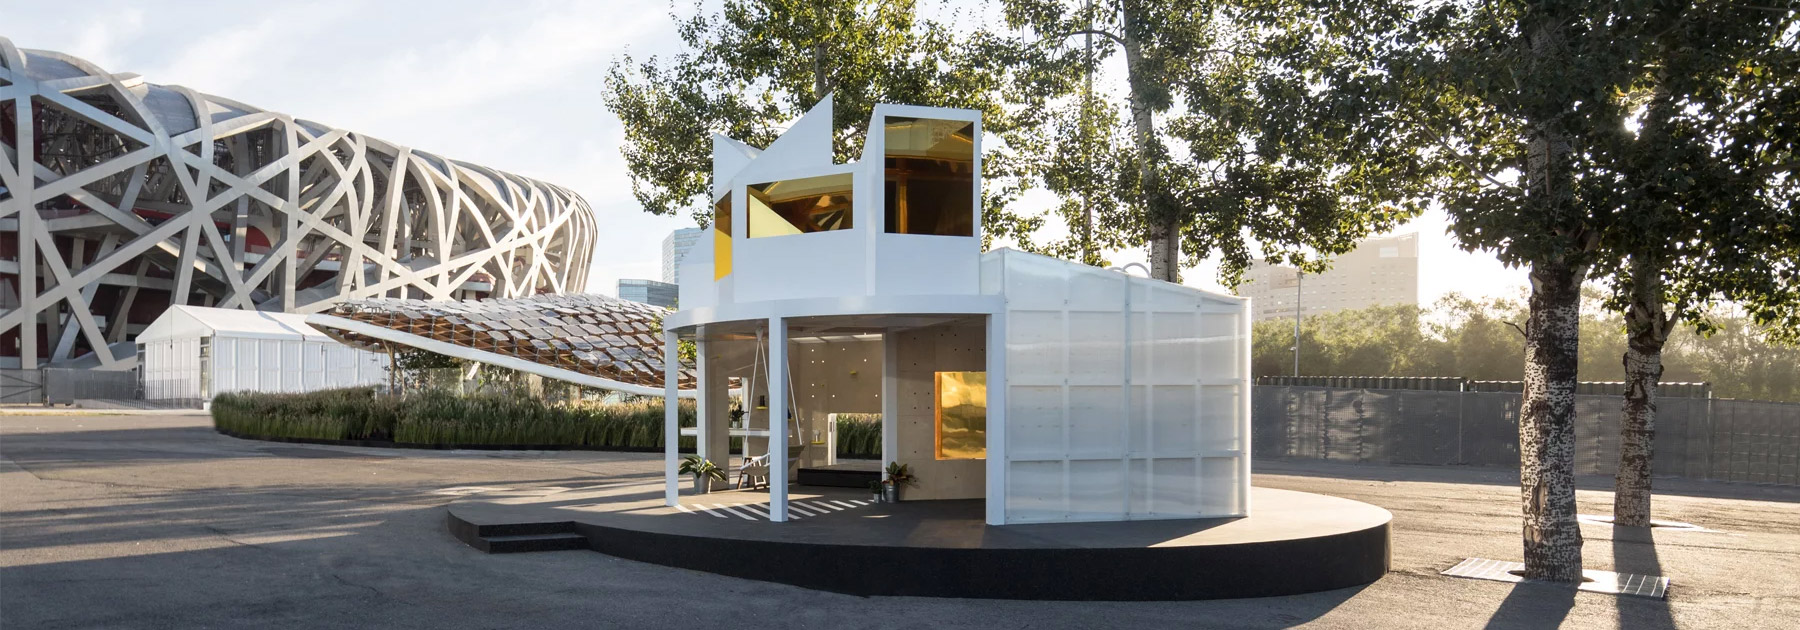 Mini Living Urban Cabin In Beijing Is Inspired By The Traditions Of Hutongs